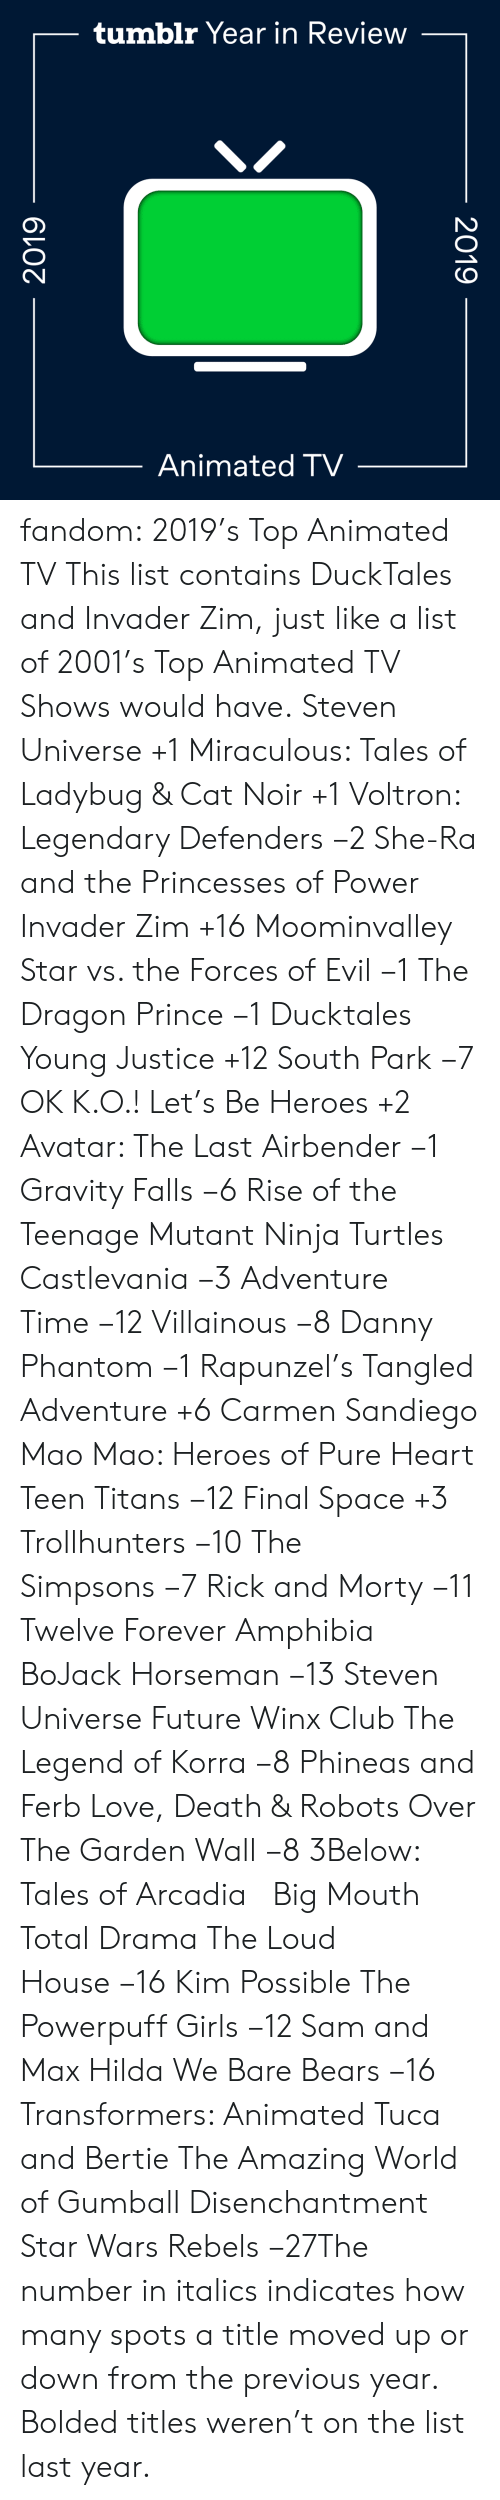 TV shows: tumblr Year in Review  Animated TV  2019  2019 fandom:  2019's Top Animated TV  This list contains DuckTales and Invader Zim, just like a list of 2001's Top Animated TV Shows would have.  Steven Universe +1  Miraculous: Tales of Ladybug & Cat Noir +1  Voltron: Legendary Defenders −2  She-Ra and the Princesses of Power   Invader Zim +16  Moominvalley  Star vs. the Forces of Evil −1  The Dragon Prince −1  Ducktales  Young Justice +12  South Park −7  OK K.O.! Let's Be Heroes +2  Avatar: The Last Airbender −1  Gravity Falls −6  Rise of the Teenage Mutant Ninja Turtles  Castlevania −3  Adventure Time −12  Villainous −8  Danny Phantom −1  Rapunzel's Tangled Adventure +6  Carmen Sandiego  Mao Mao: Heroes of Pure Heart  Teen Titans −12  Final Space +3  Trollhunters −10  The Simpsons −7  Rick and Morty −11  Twelve Forever  Amphibia  BoJack Horseman −13  Steven Universe Future  Winx Club  The Legend of Korra −8  Phineas and Ferb  Love, Death & Robots  Over The Garden Wall −8  3Below: Tales of Arcadia    Big Mouth  Total Drama  The Loud House −16  Kim Possible  The Powerpuff Girls −12  Sam and Max  Hilda  We Bare Bears −16  Transformers: Animated  Tuca and Bertie  The Amazing World of Gumball  Disenchantment Star Wars Rebels −27The number in italics indicates how many spots a title moved up or down from the previous year. Bolded titles weren't on the list last year.